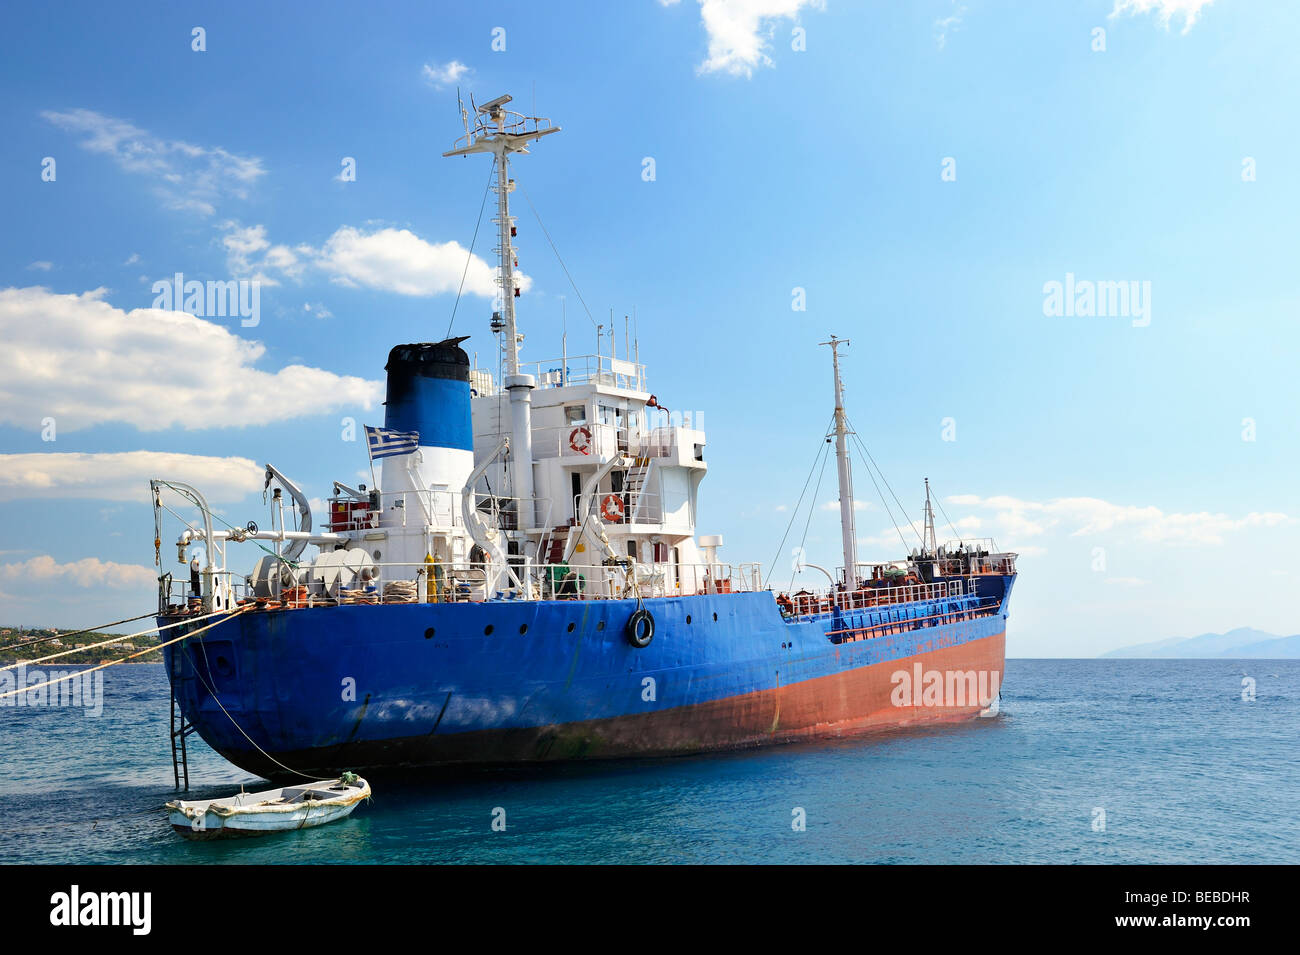 Moored cargo ship - Stock Image